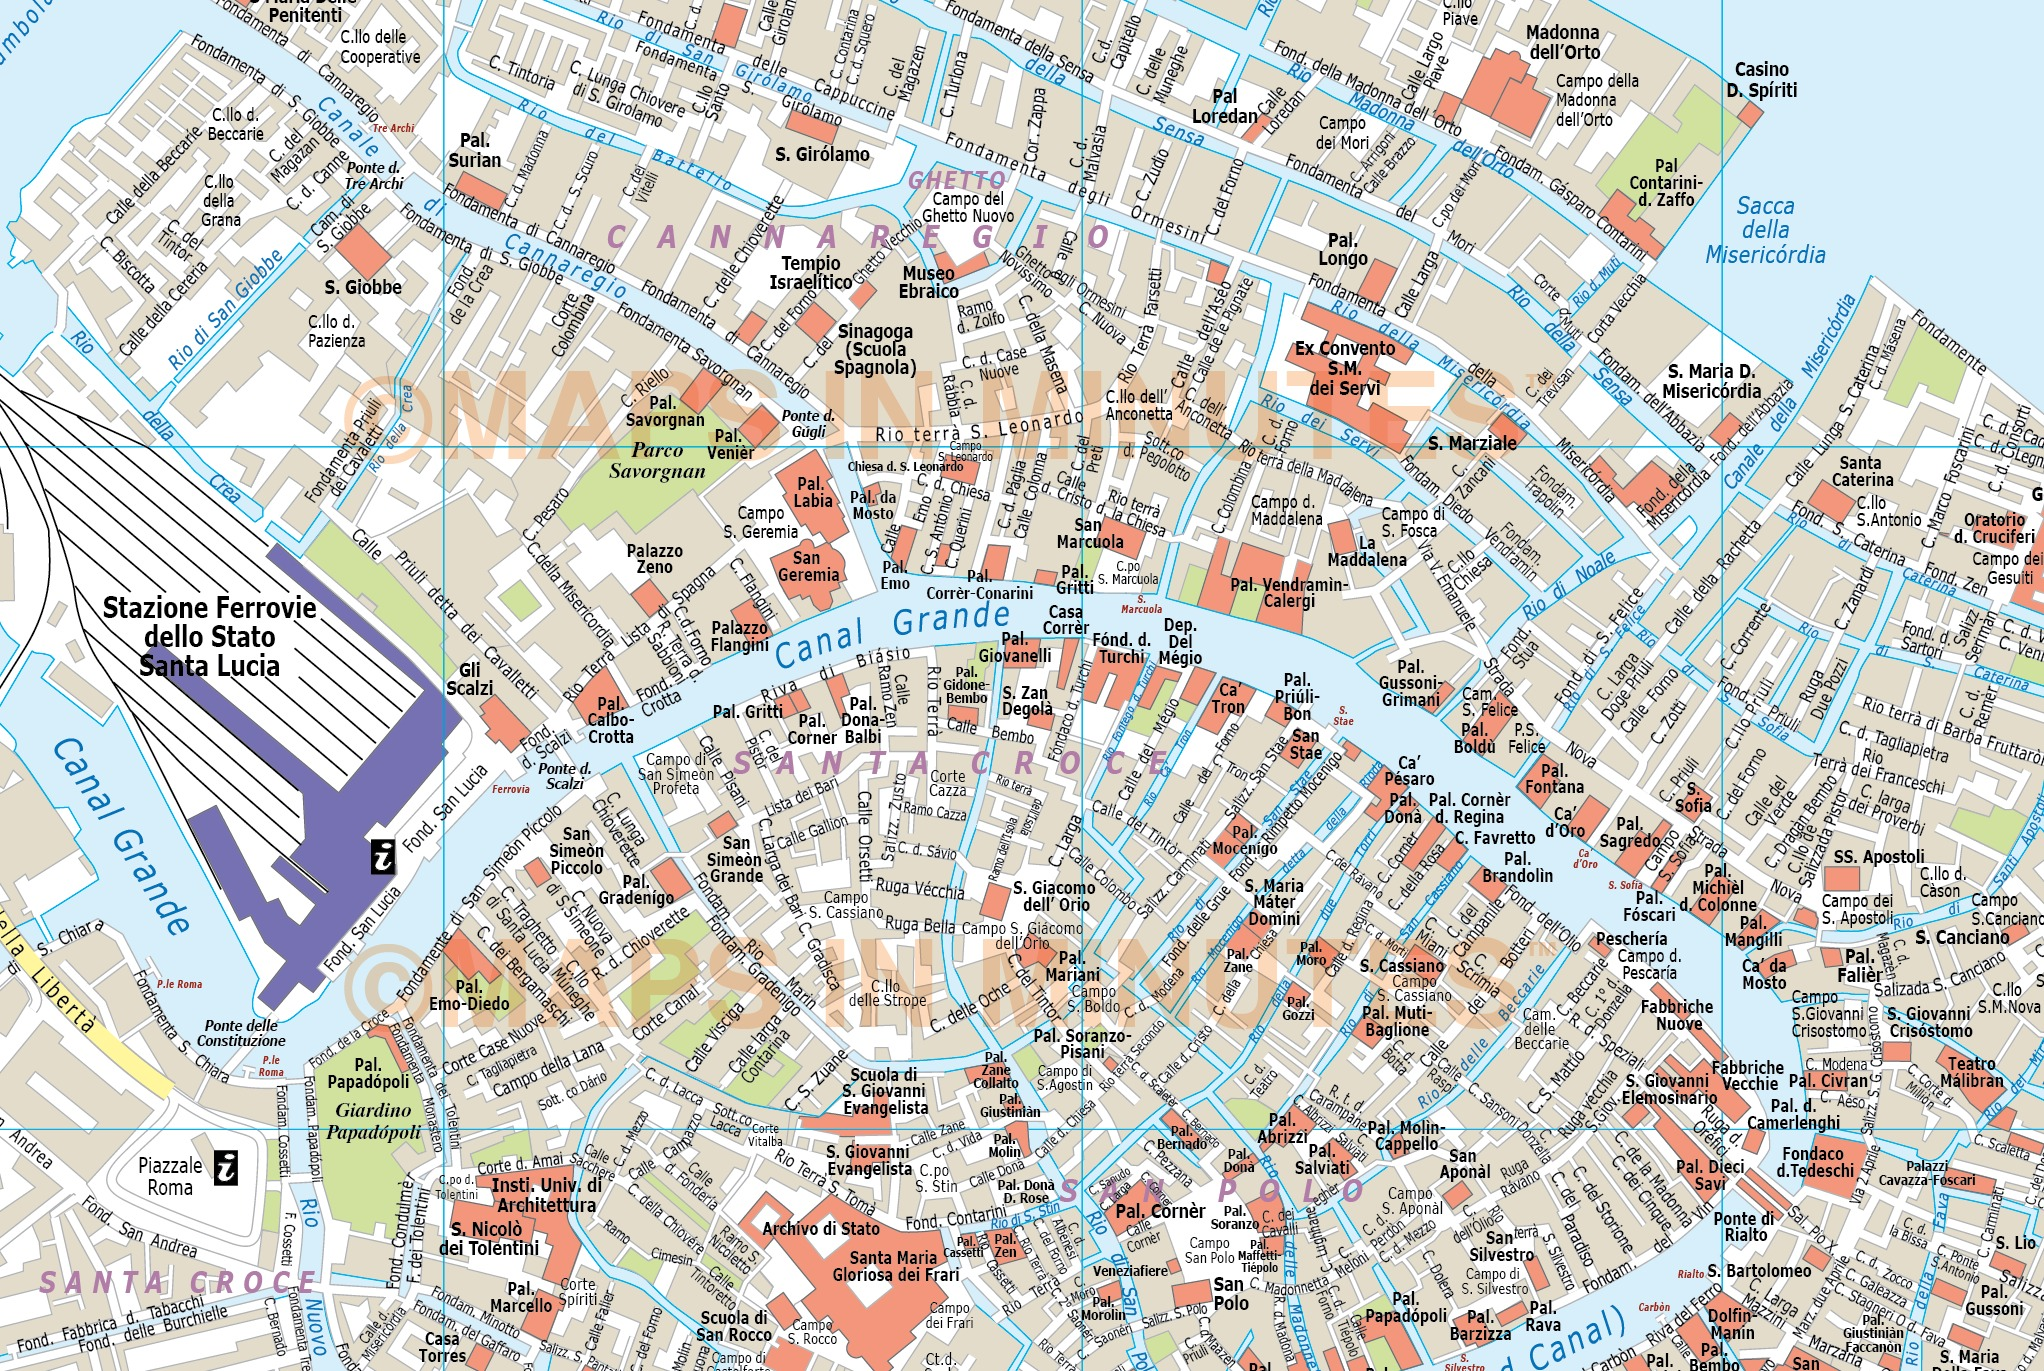 Digital vector venice city royalty free map in illustrator or pdf venice city map in illustrator cs or pdf format detail gumiabroncs Images